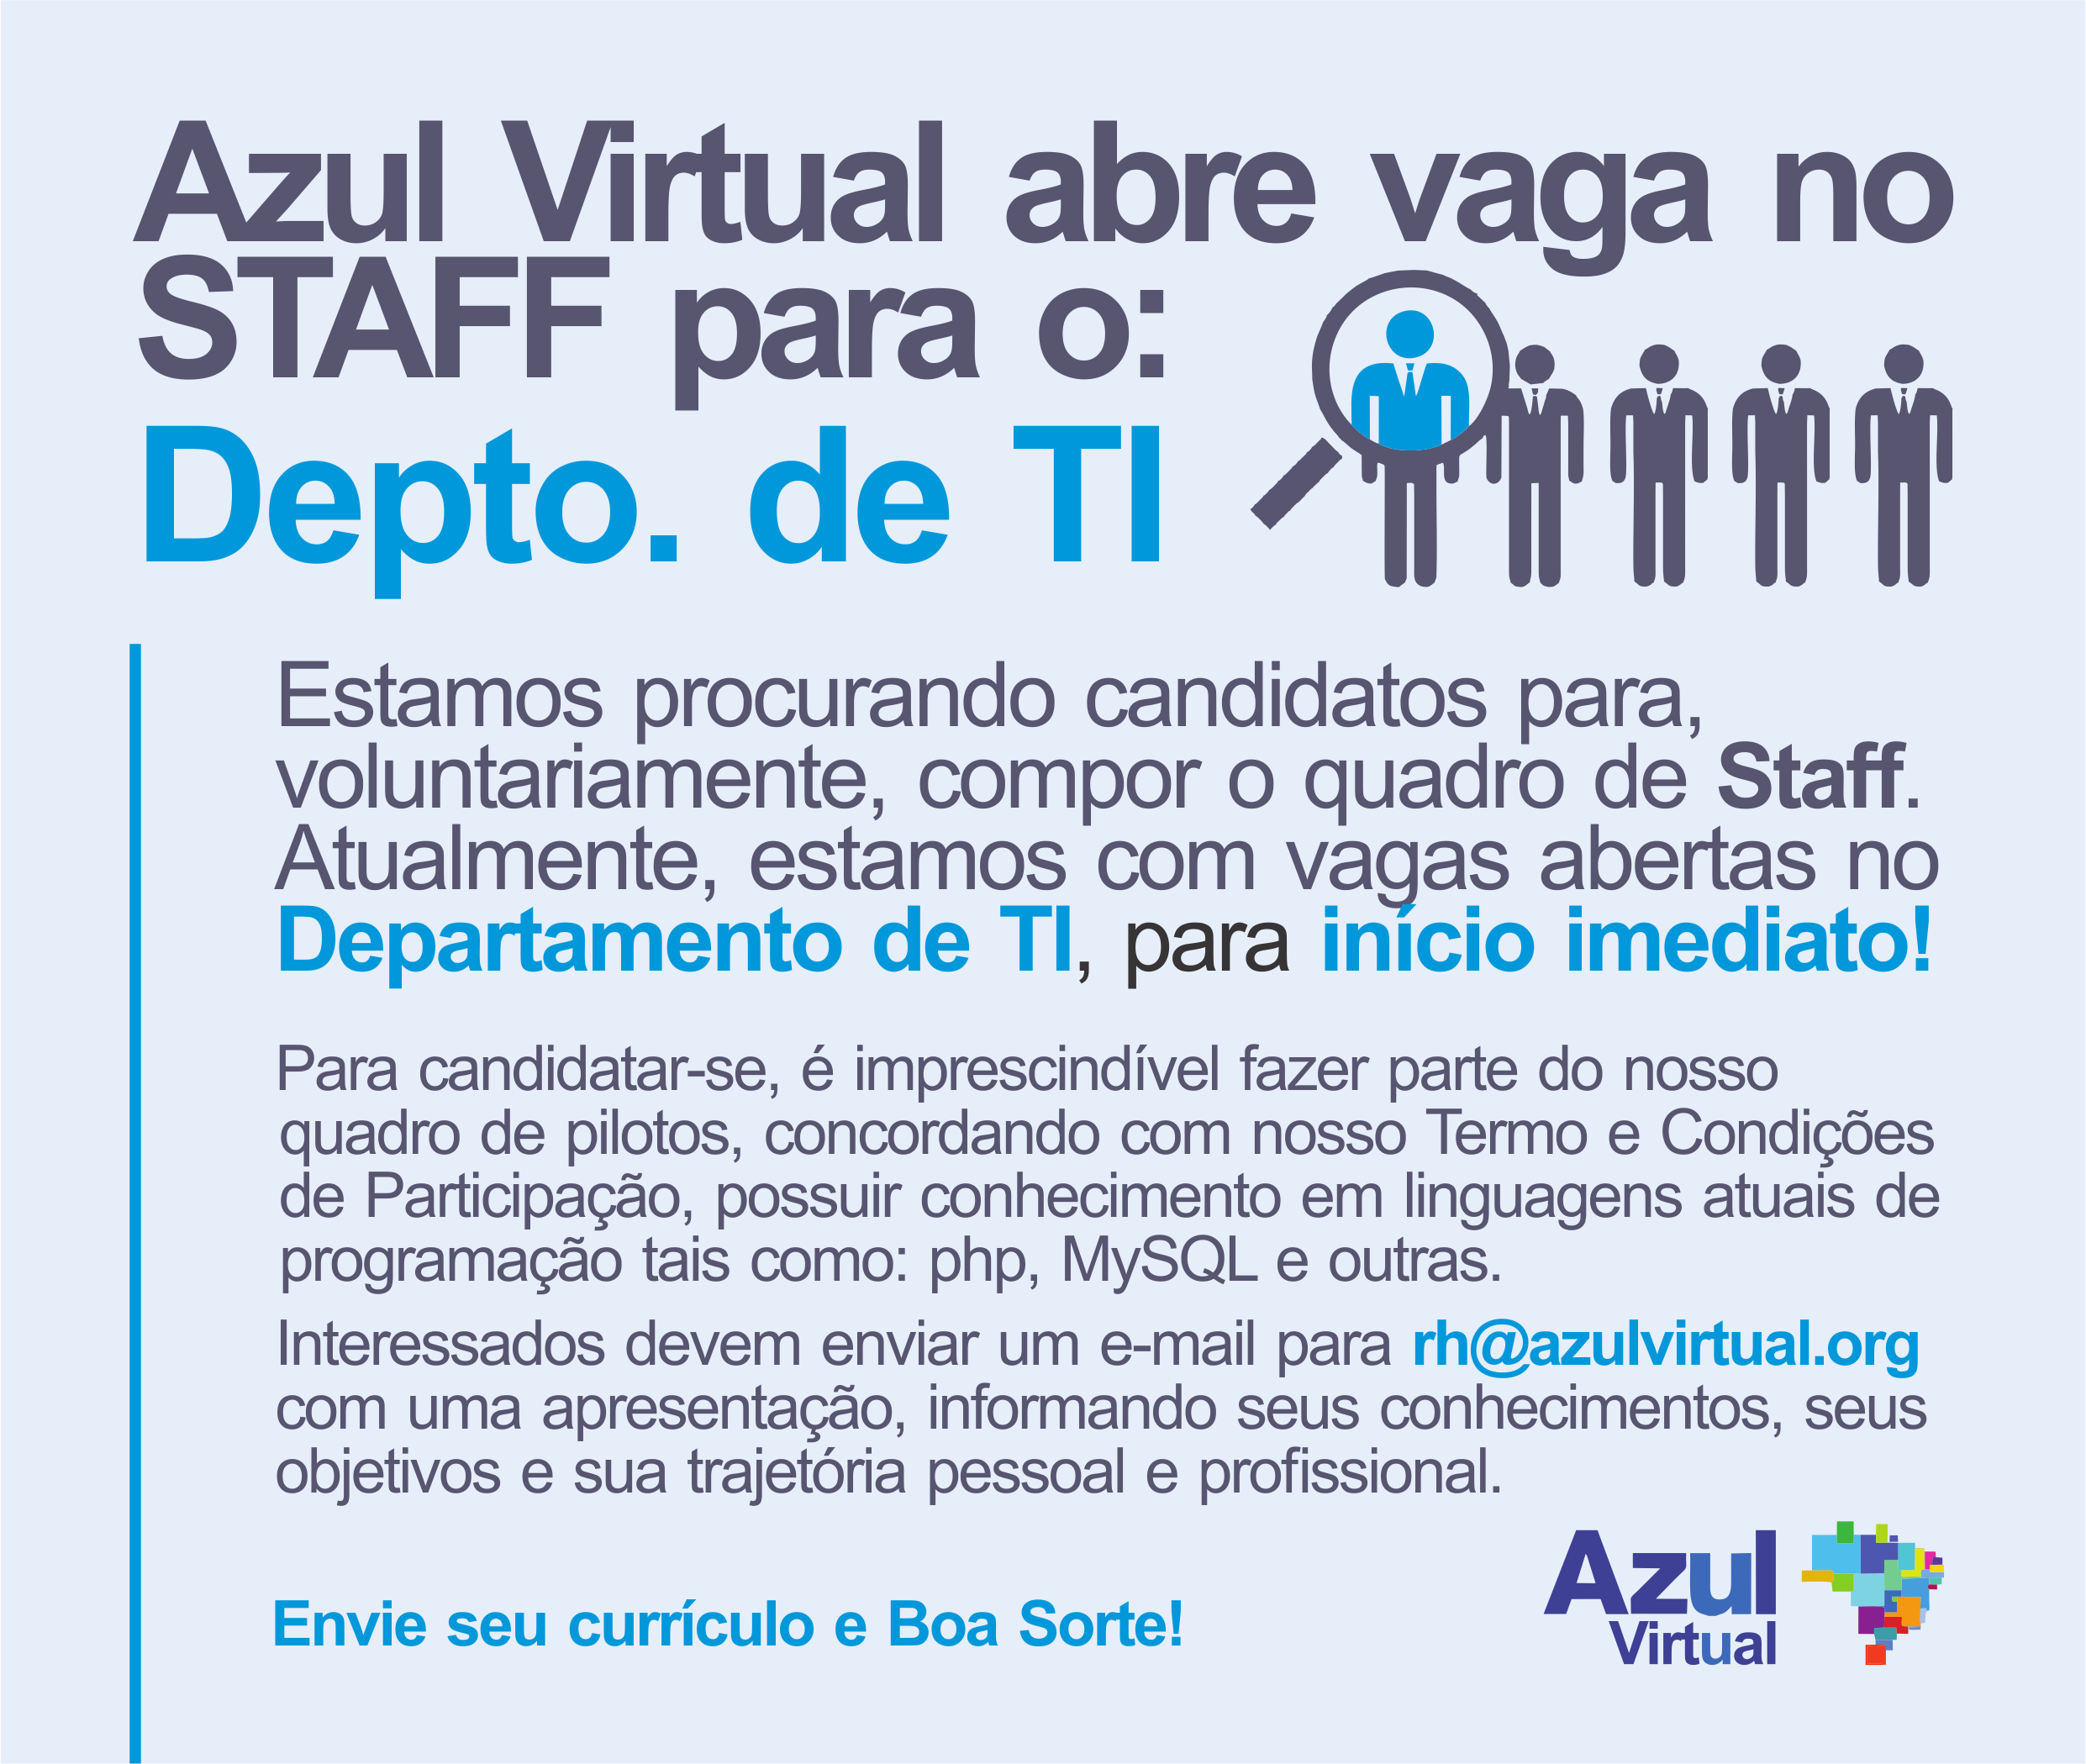 Azul Virtual abre vaga no STAFF para o Depto. de TI TI_v17